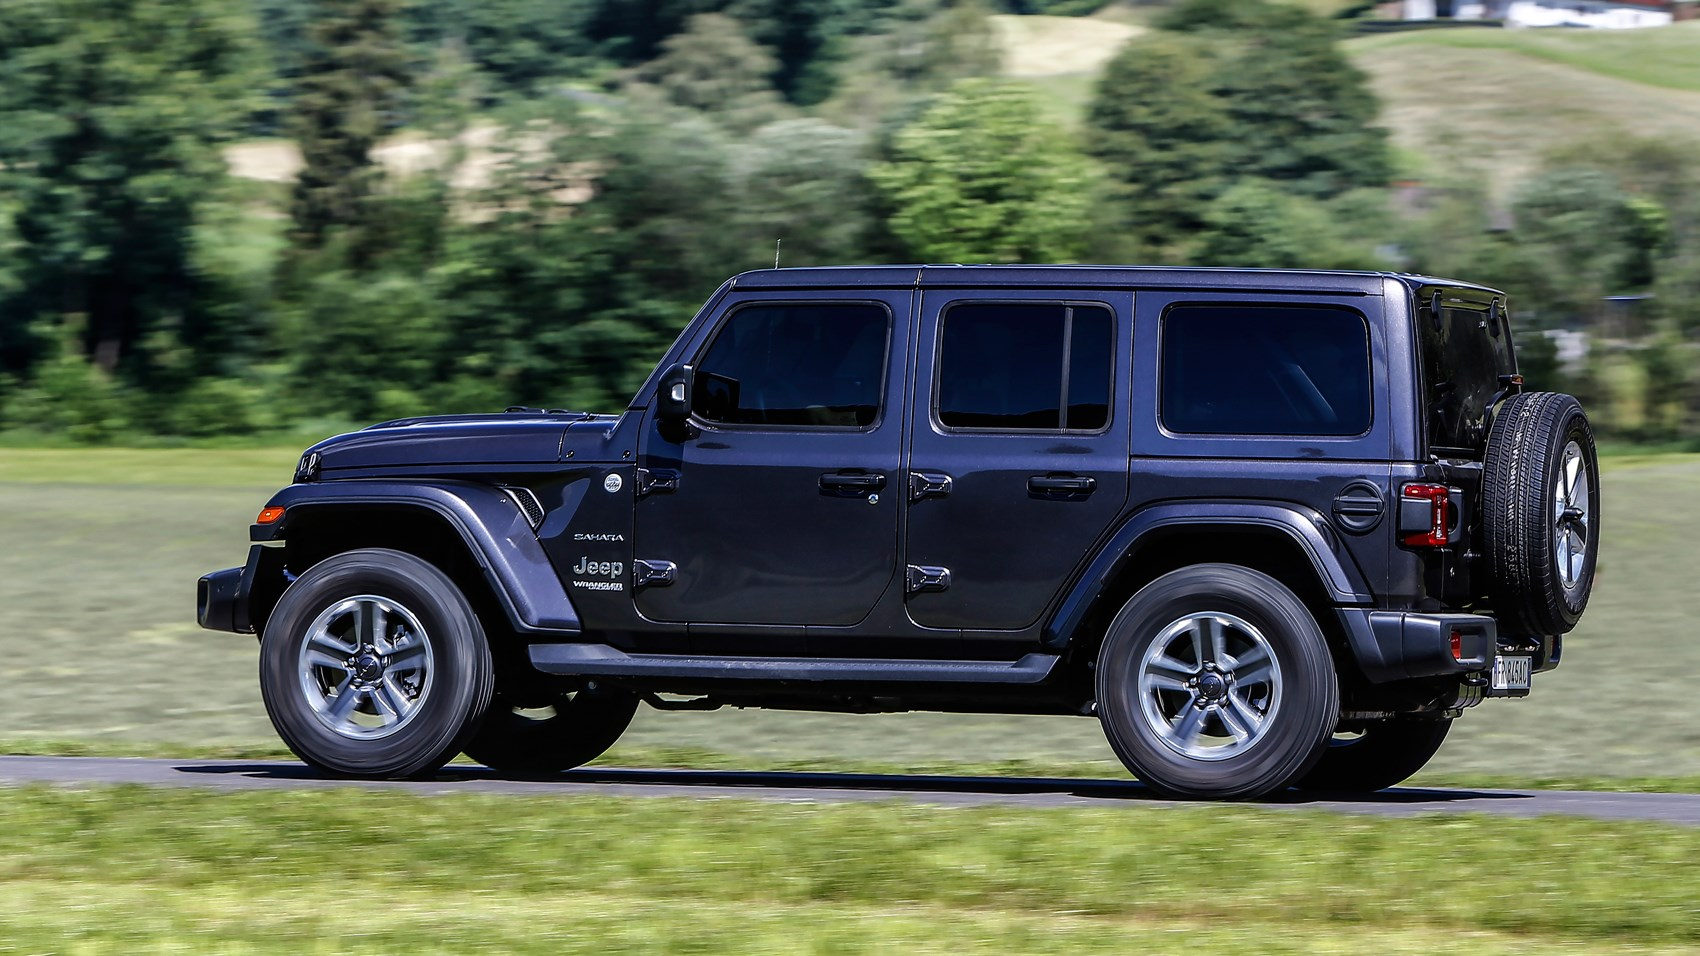 jeep wrangler 2018 review full on and off road verdict. Black Bedroom Furniture Sets. Home Design Ideas